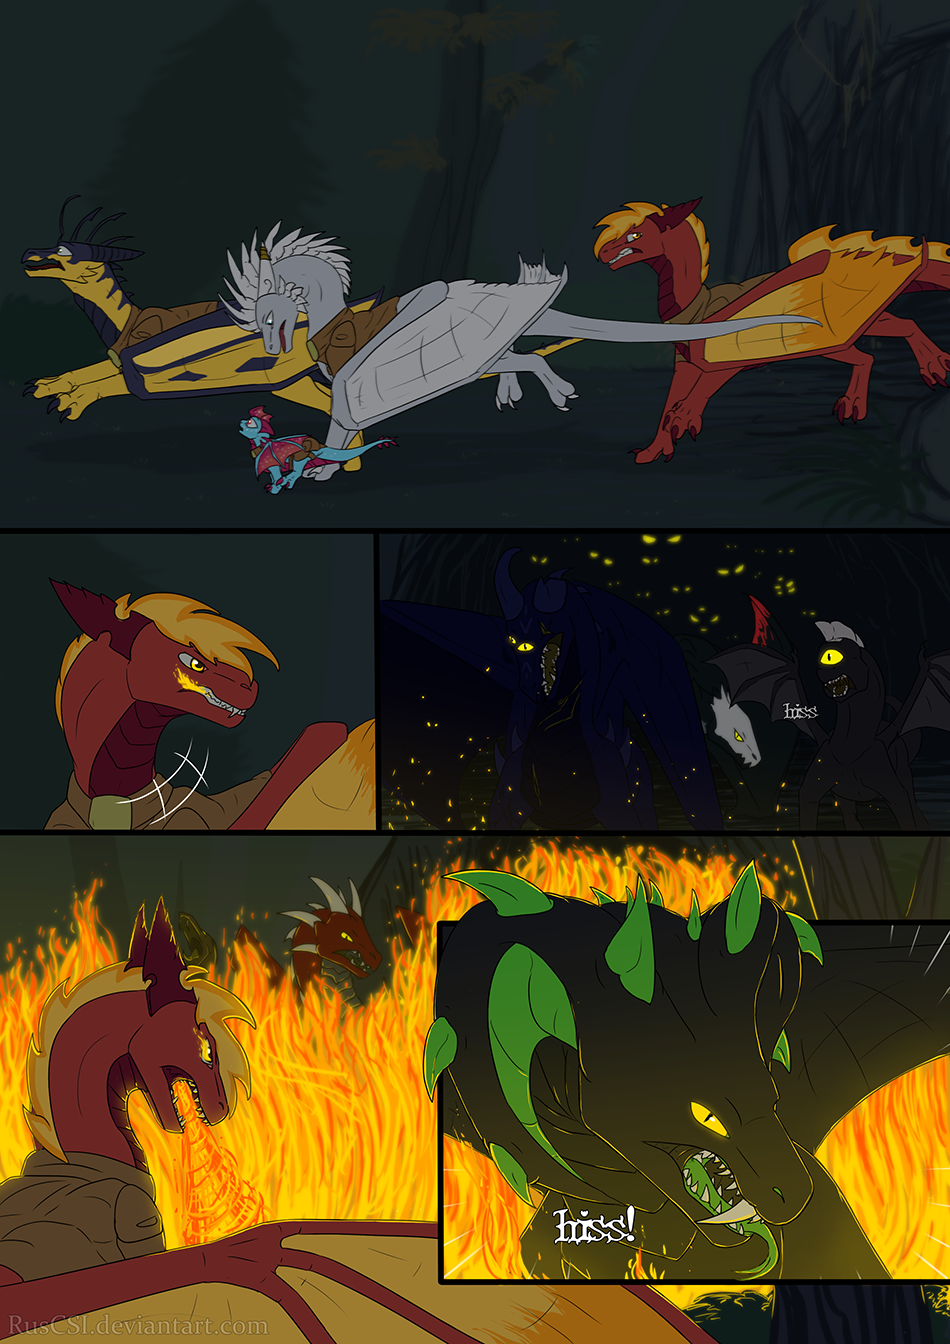 Courage of the cowardly dragon - page 34